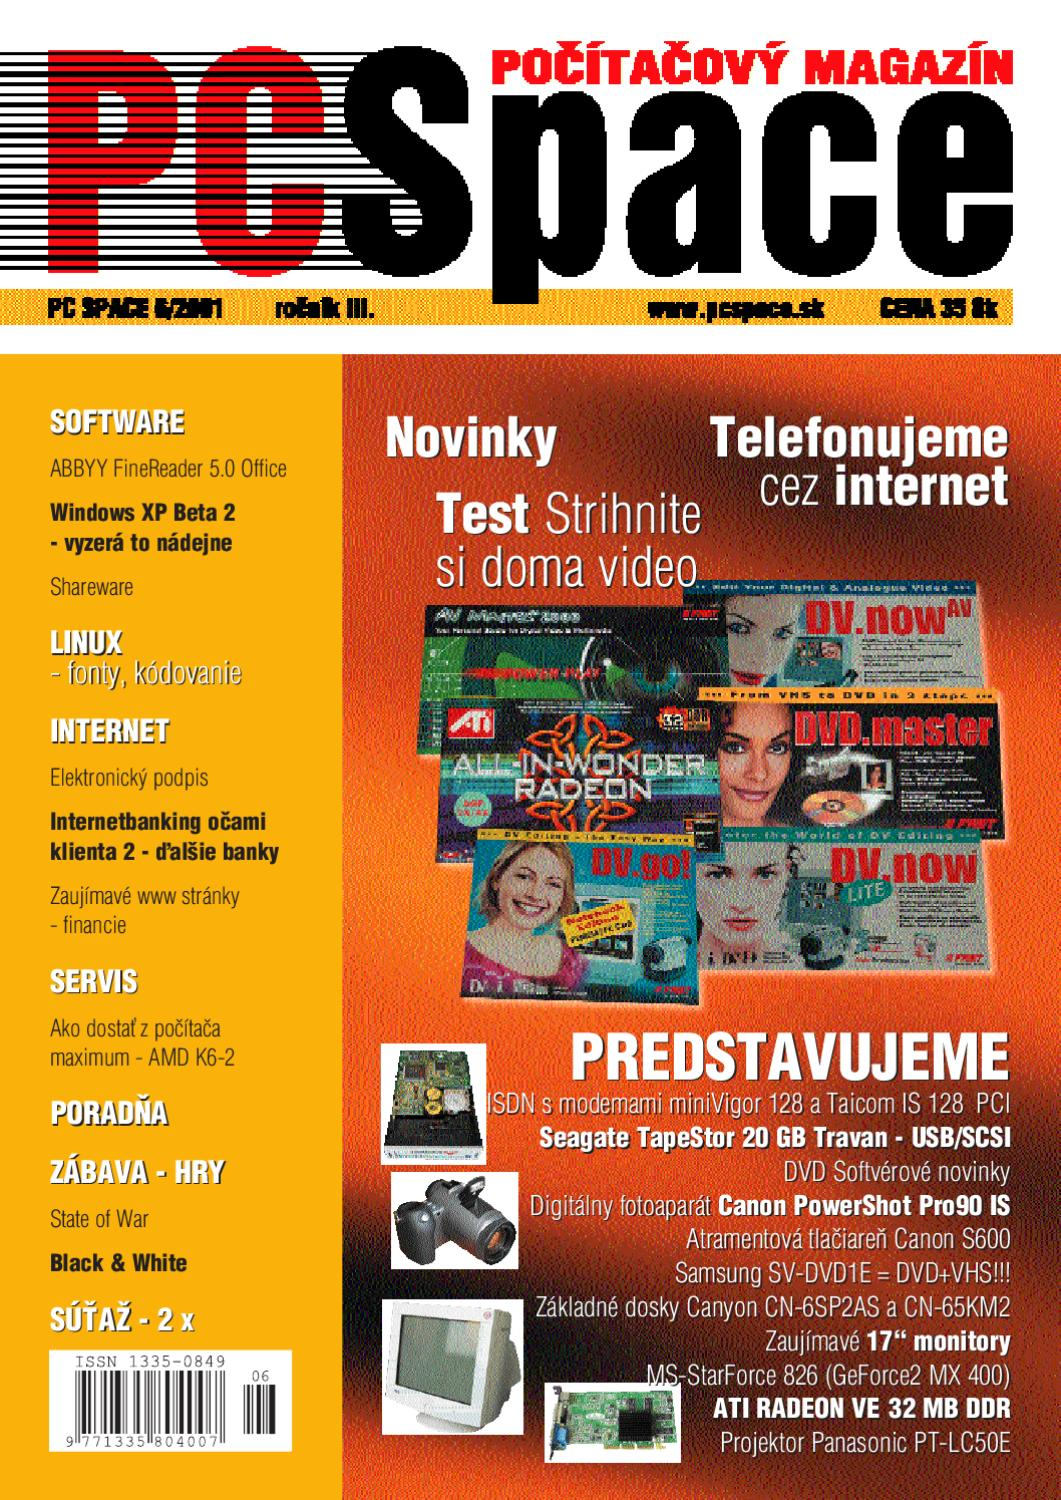 a5c96c23d 2001-06 by PC_Space s.r.o. - issuu